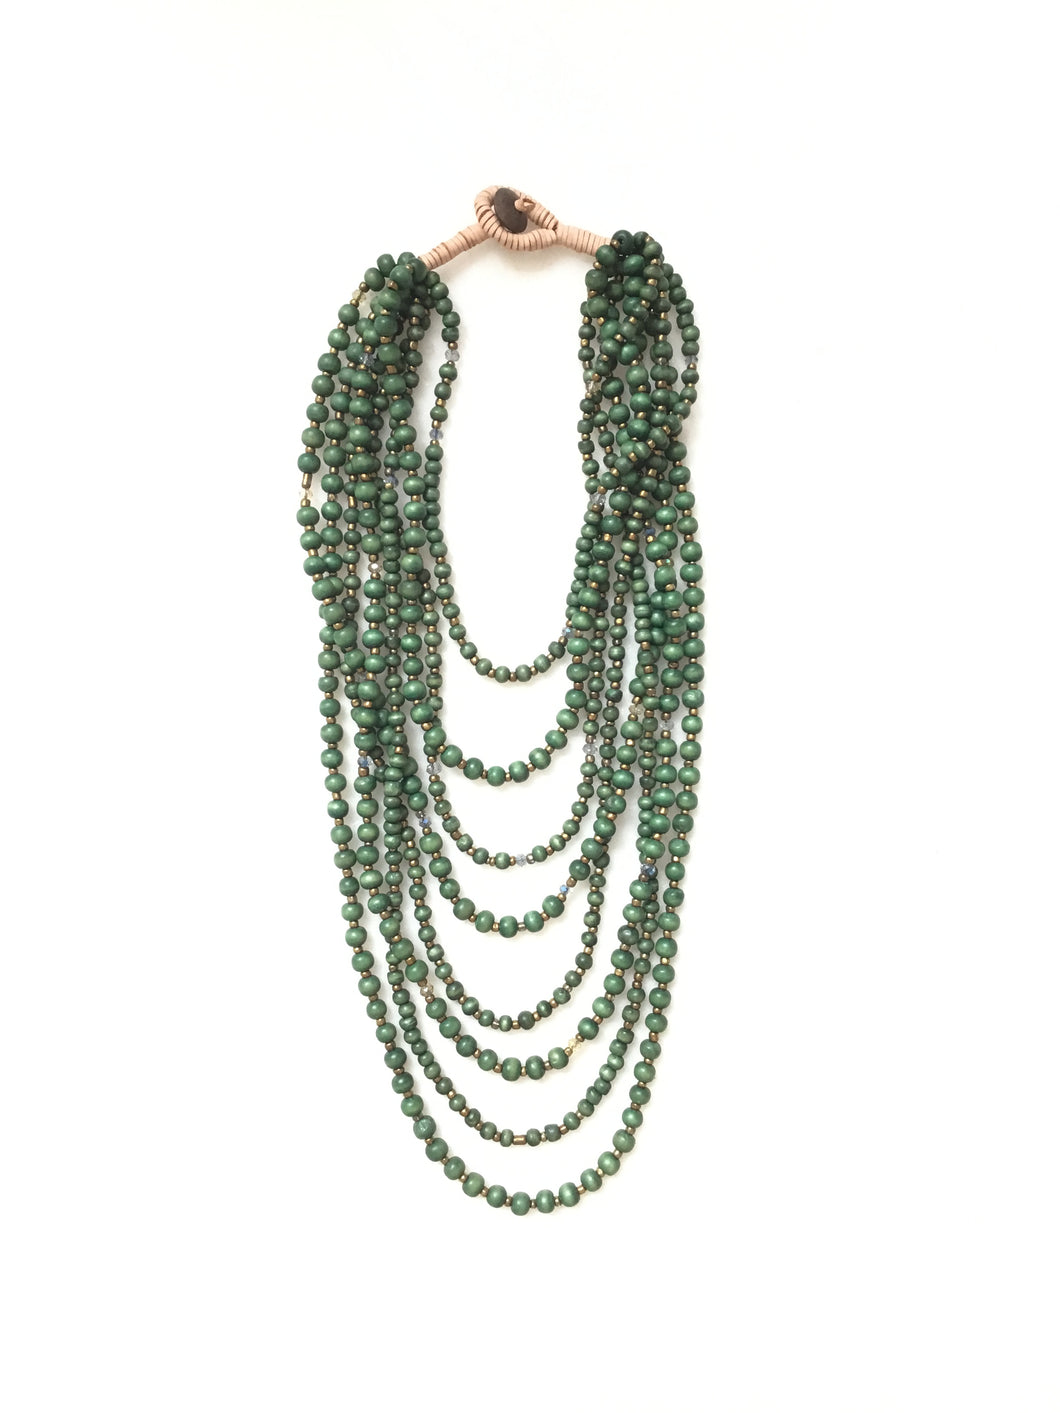 Maize Necklace - Forest